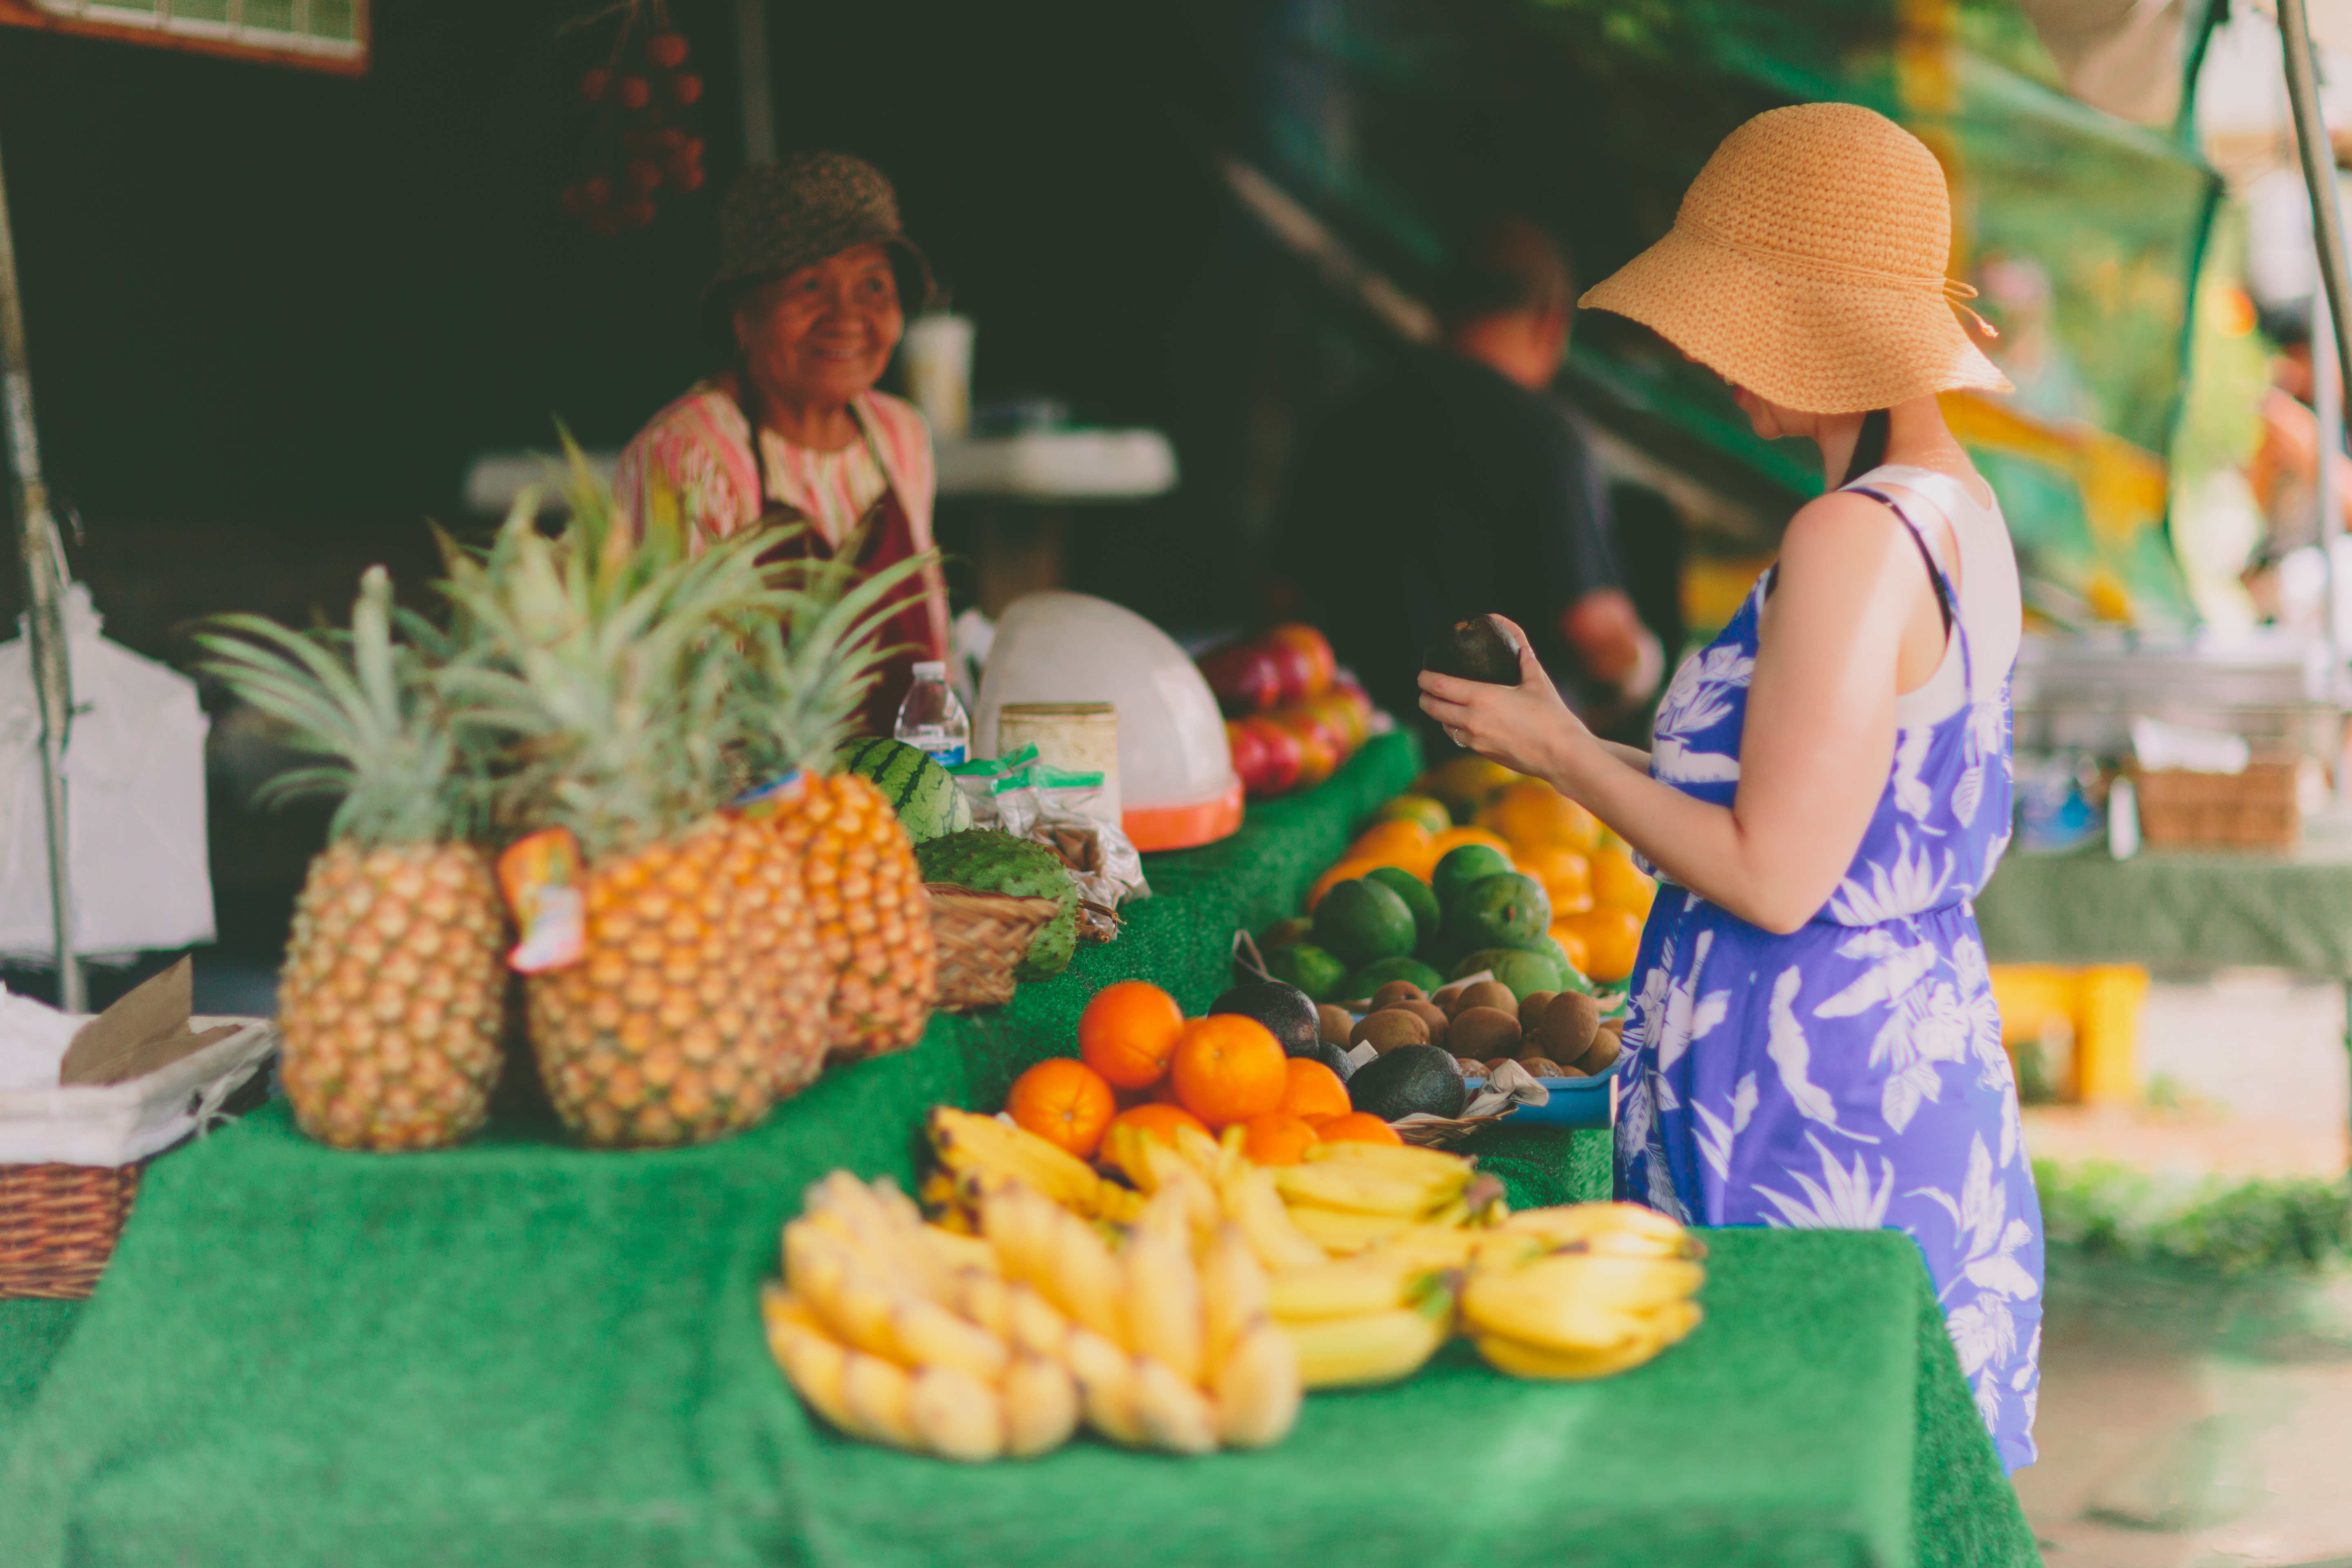 travel-shopping-market-groceries-small-business-hawaii-shop-local-farmers-market-local-business_t20_yROALx (2)